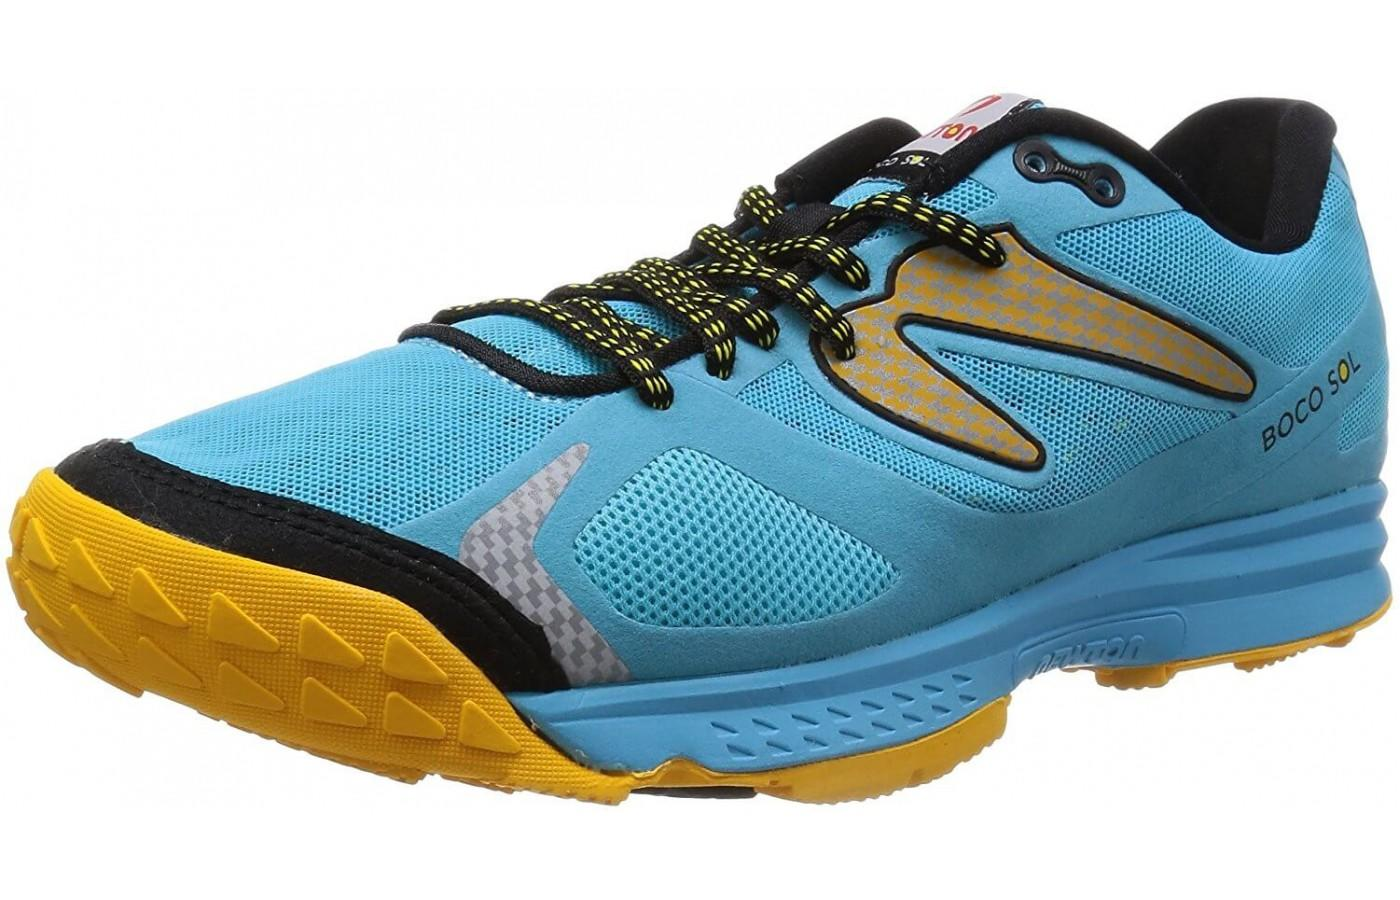 the Newton BoCo Sol is a dynamic trail shoe